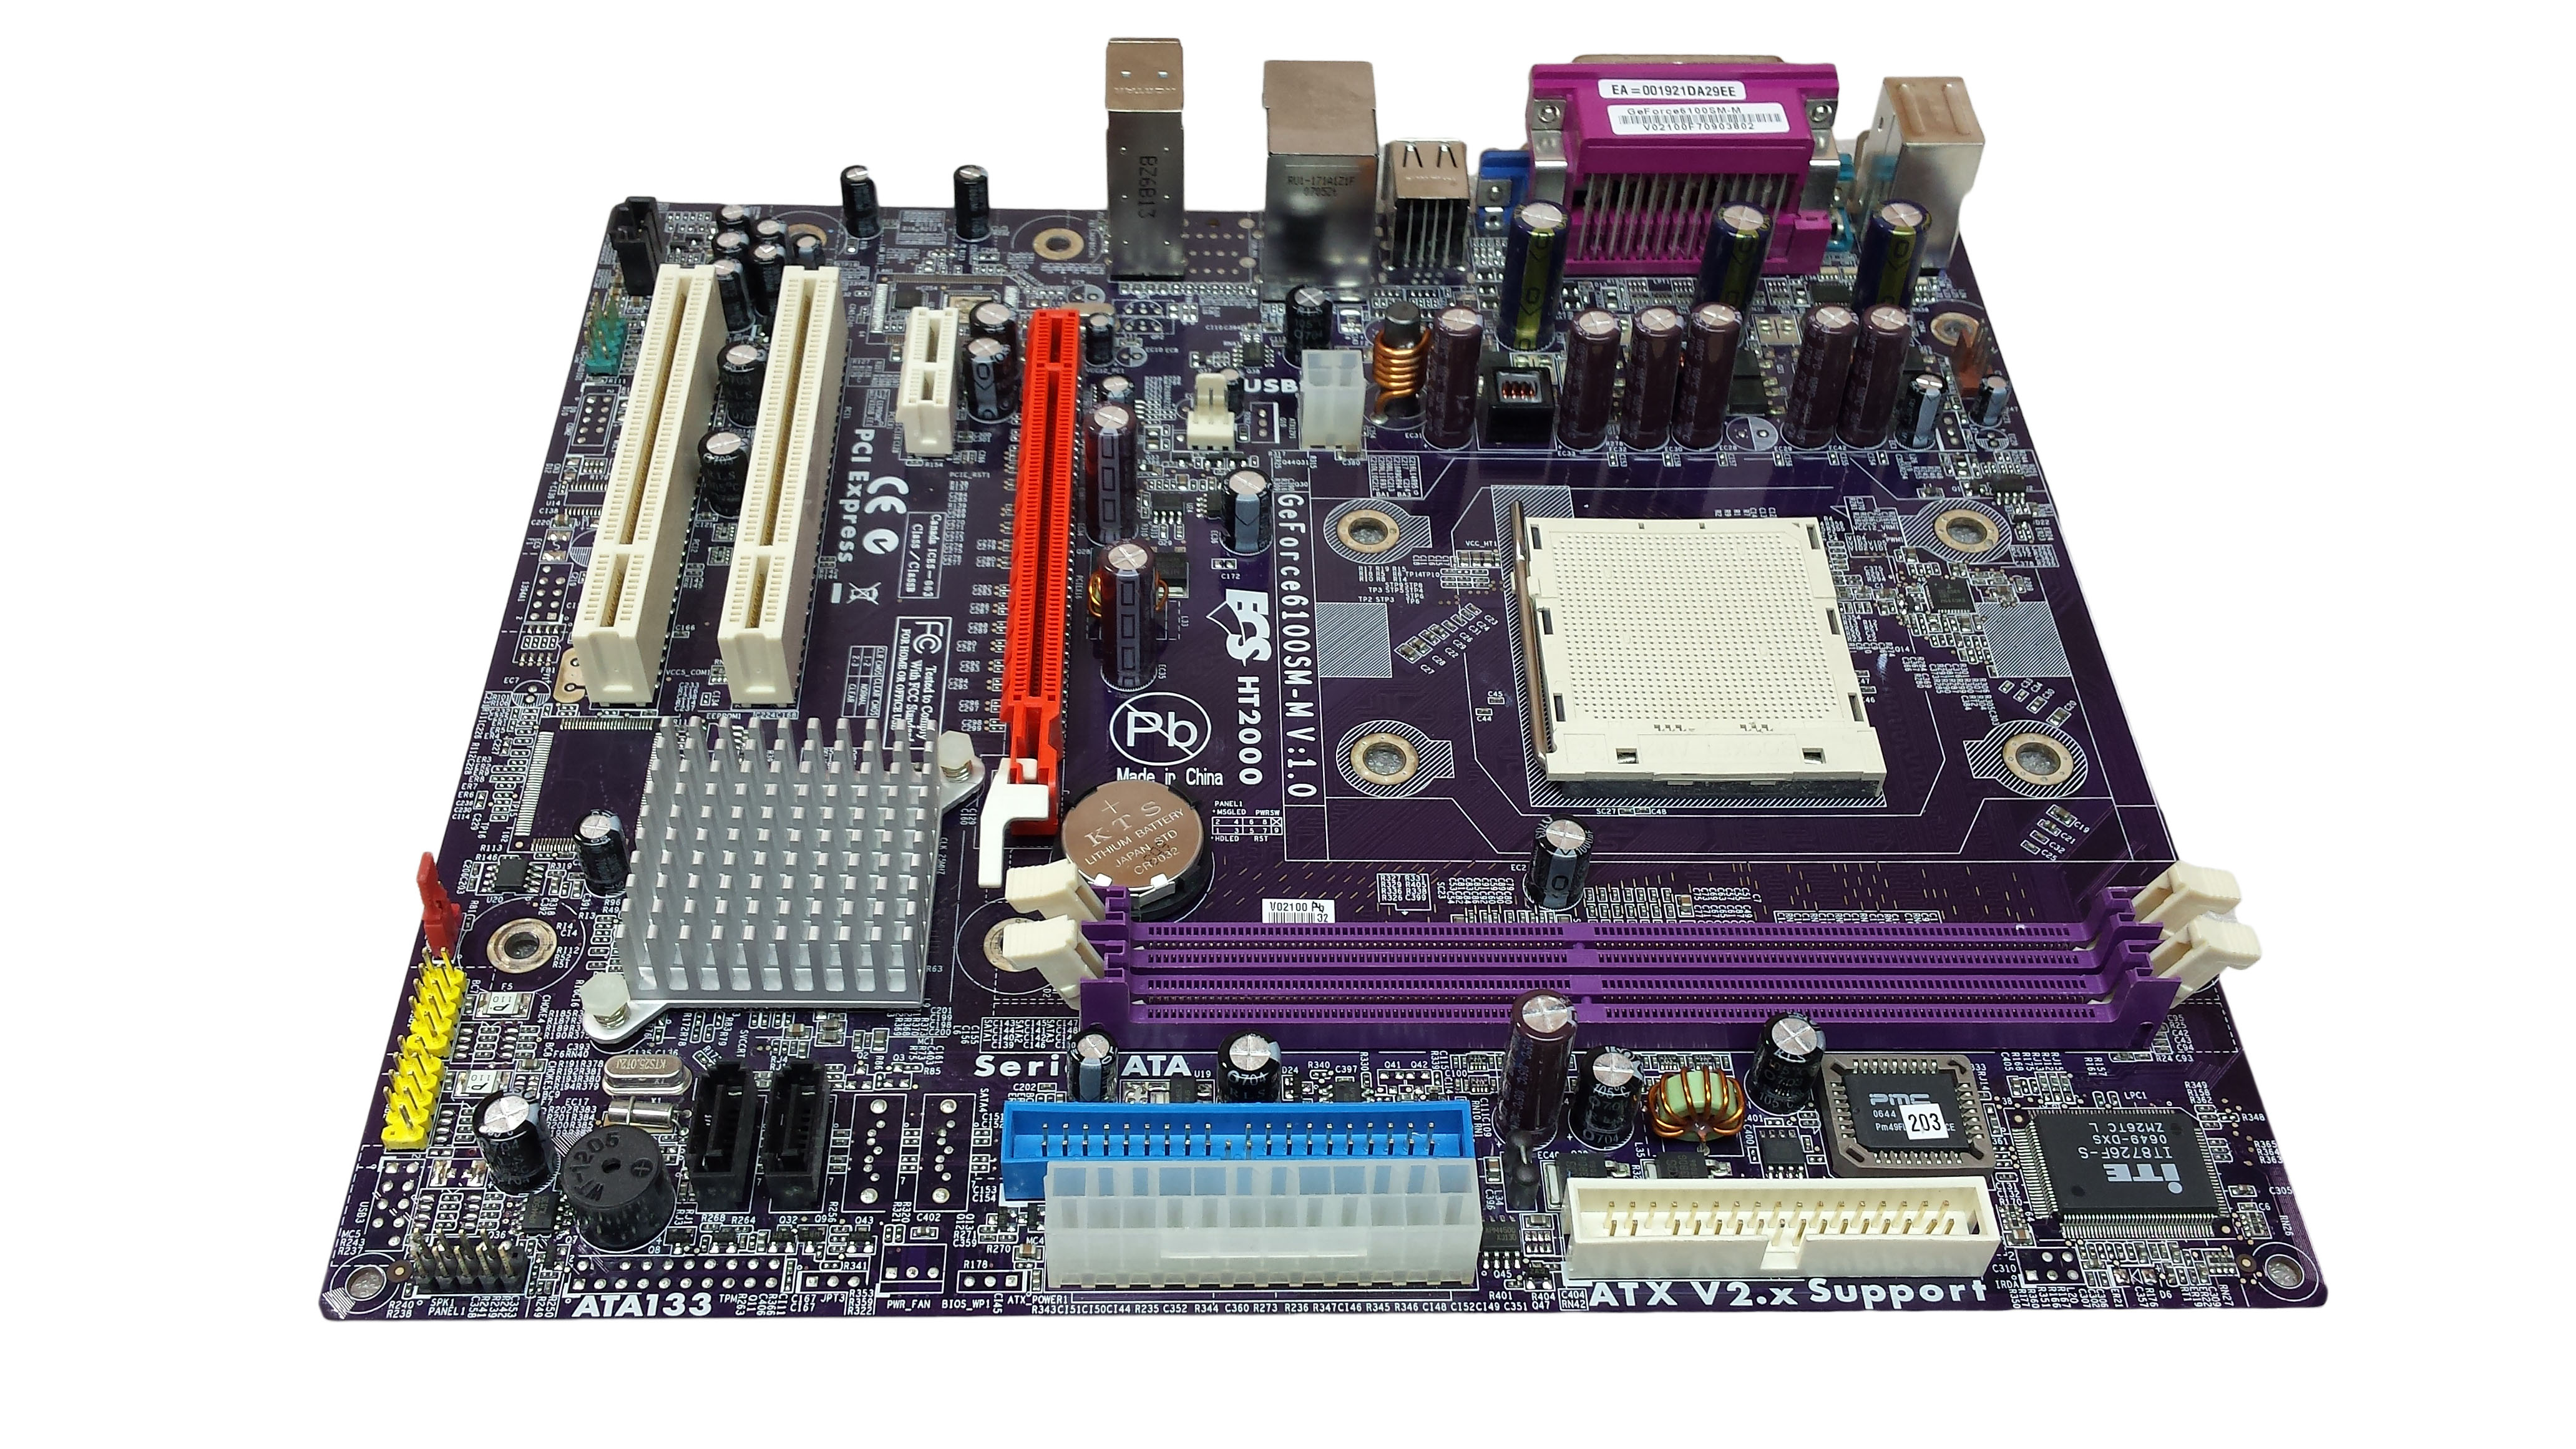 GEFORCE6100SM-M MOTHERBOARD DRIVER FOR PC